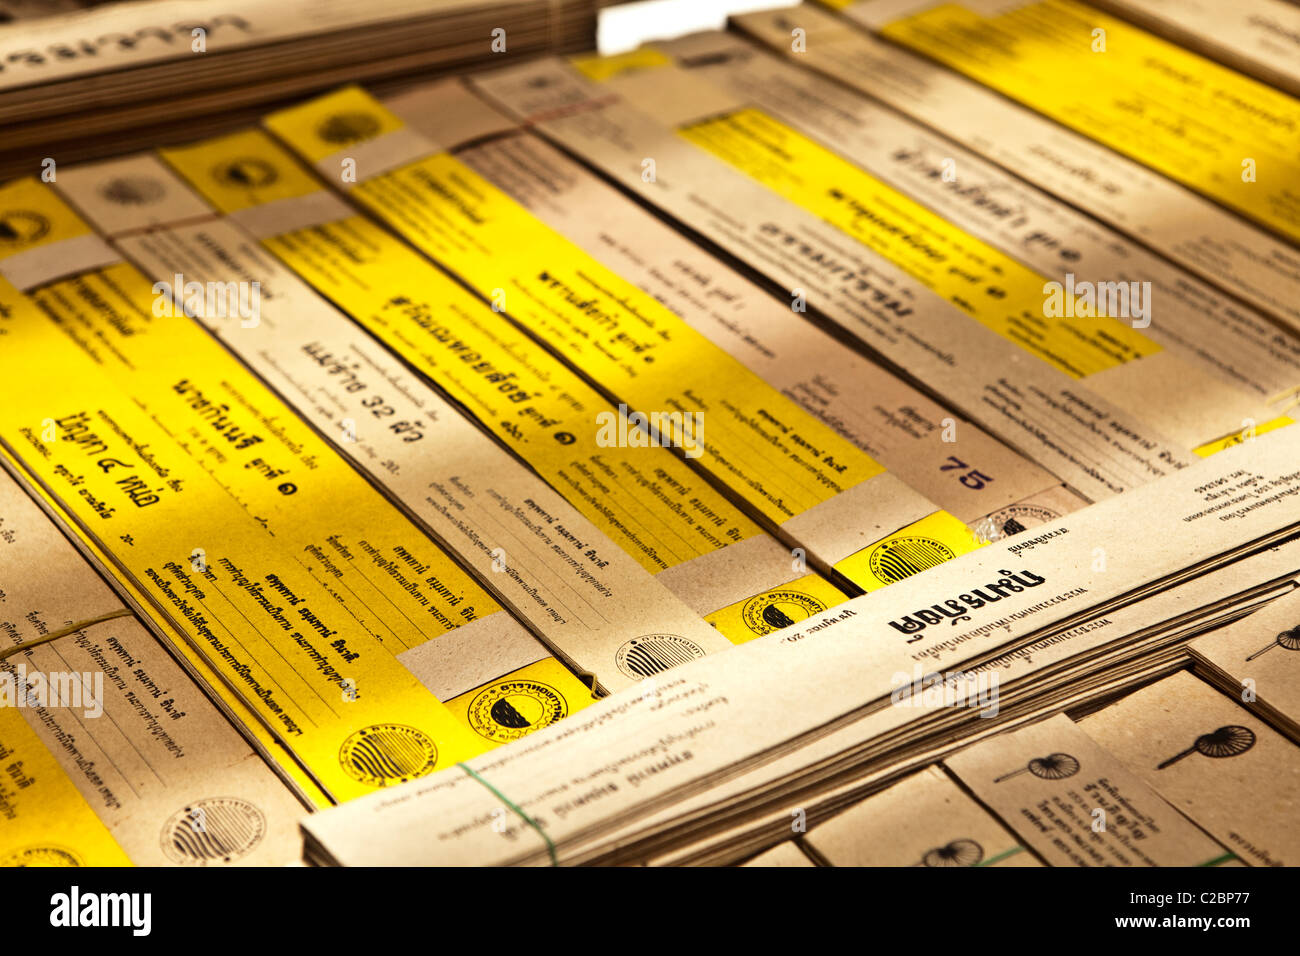 Buddhism canon(sacred book) sale in bookstore in Lampang, Thailand - Stock Image